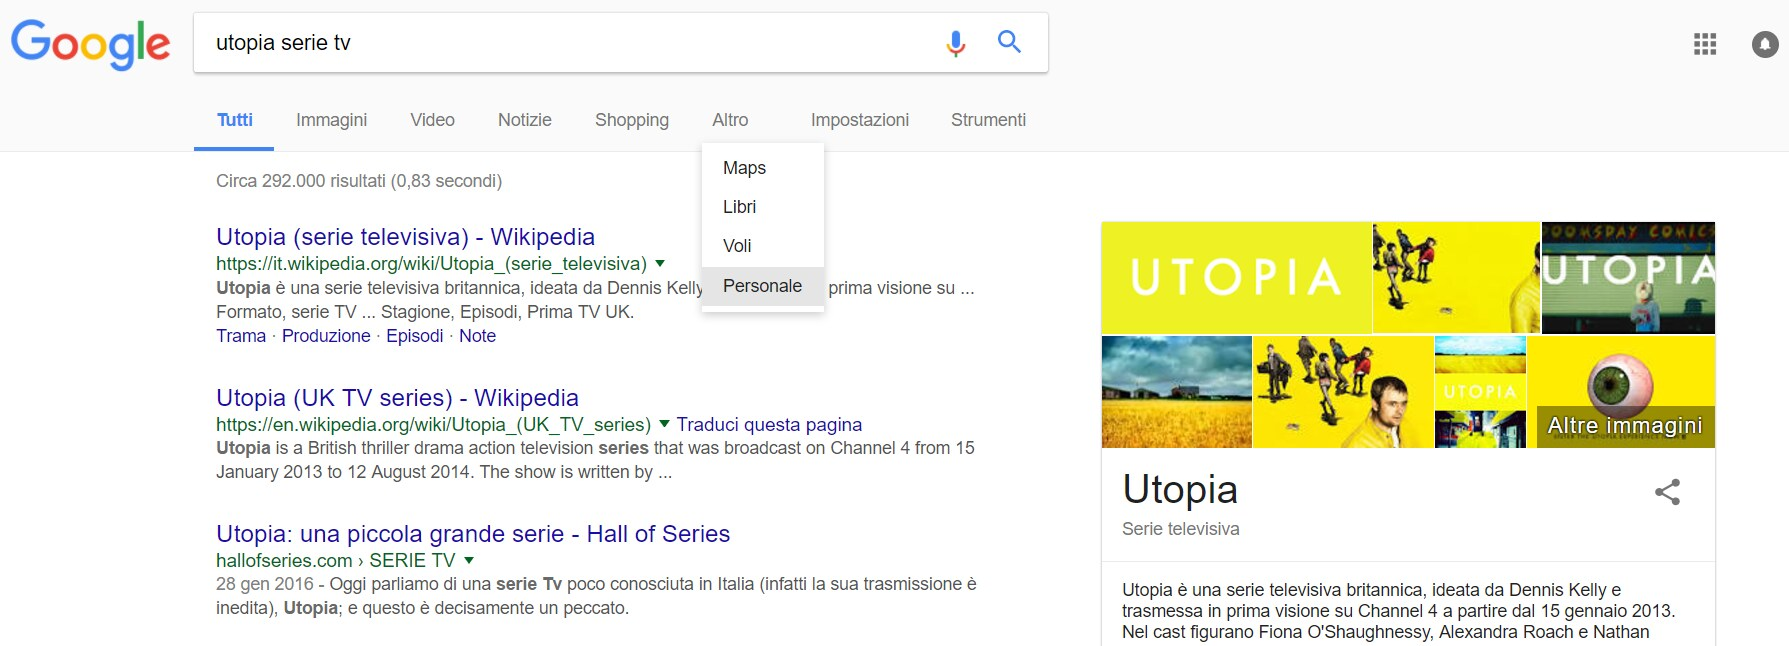 Google-ricerca-tab-personale-1